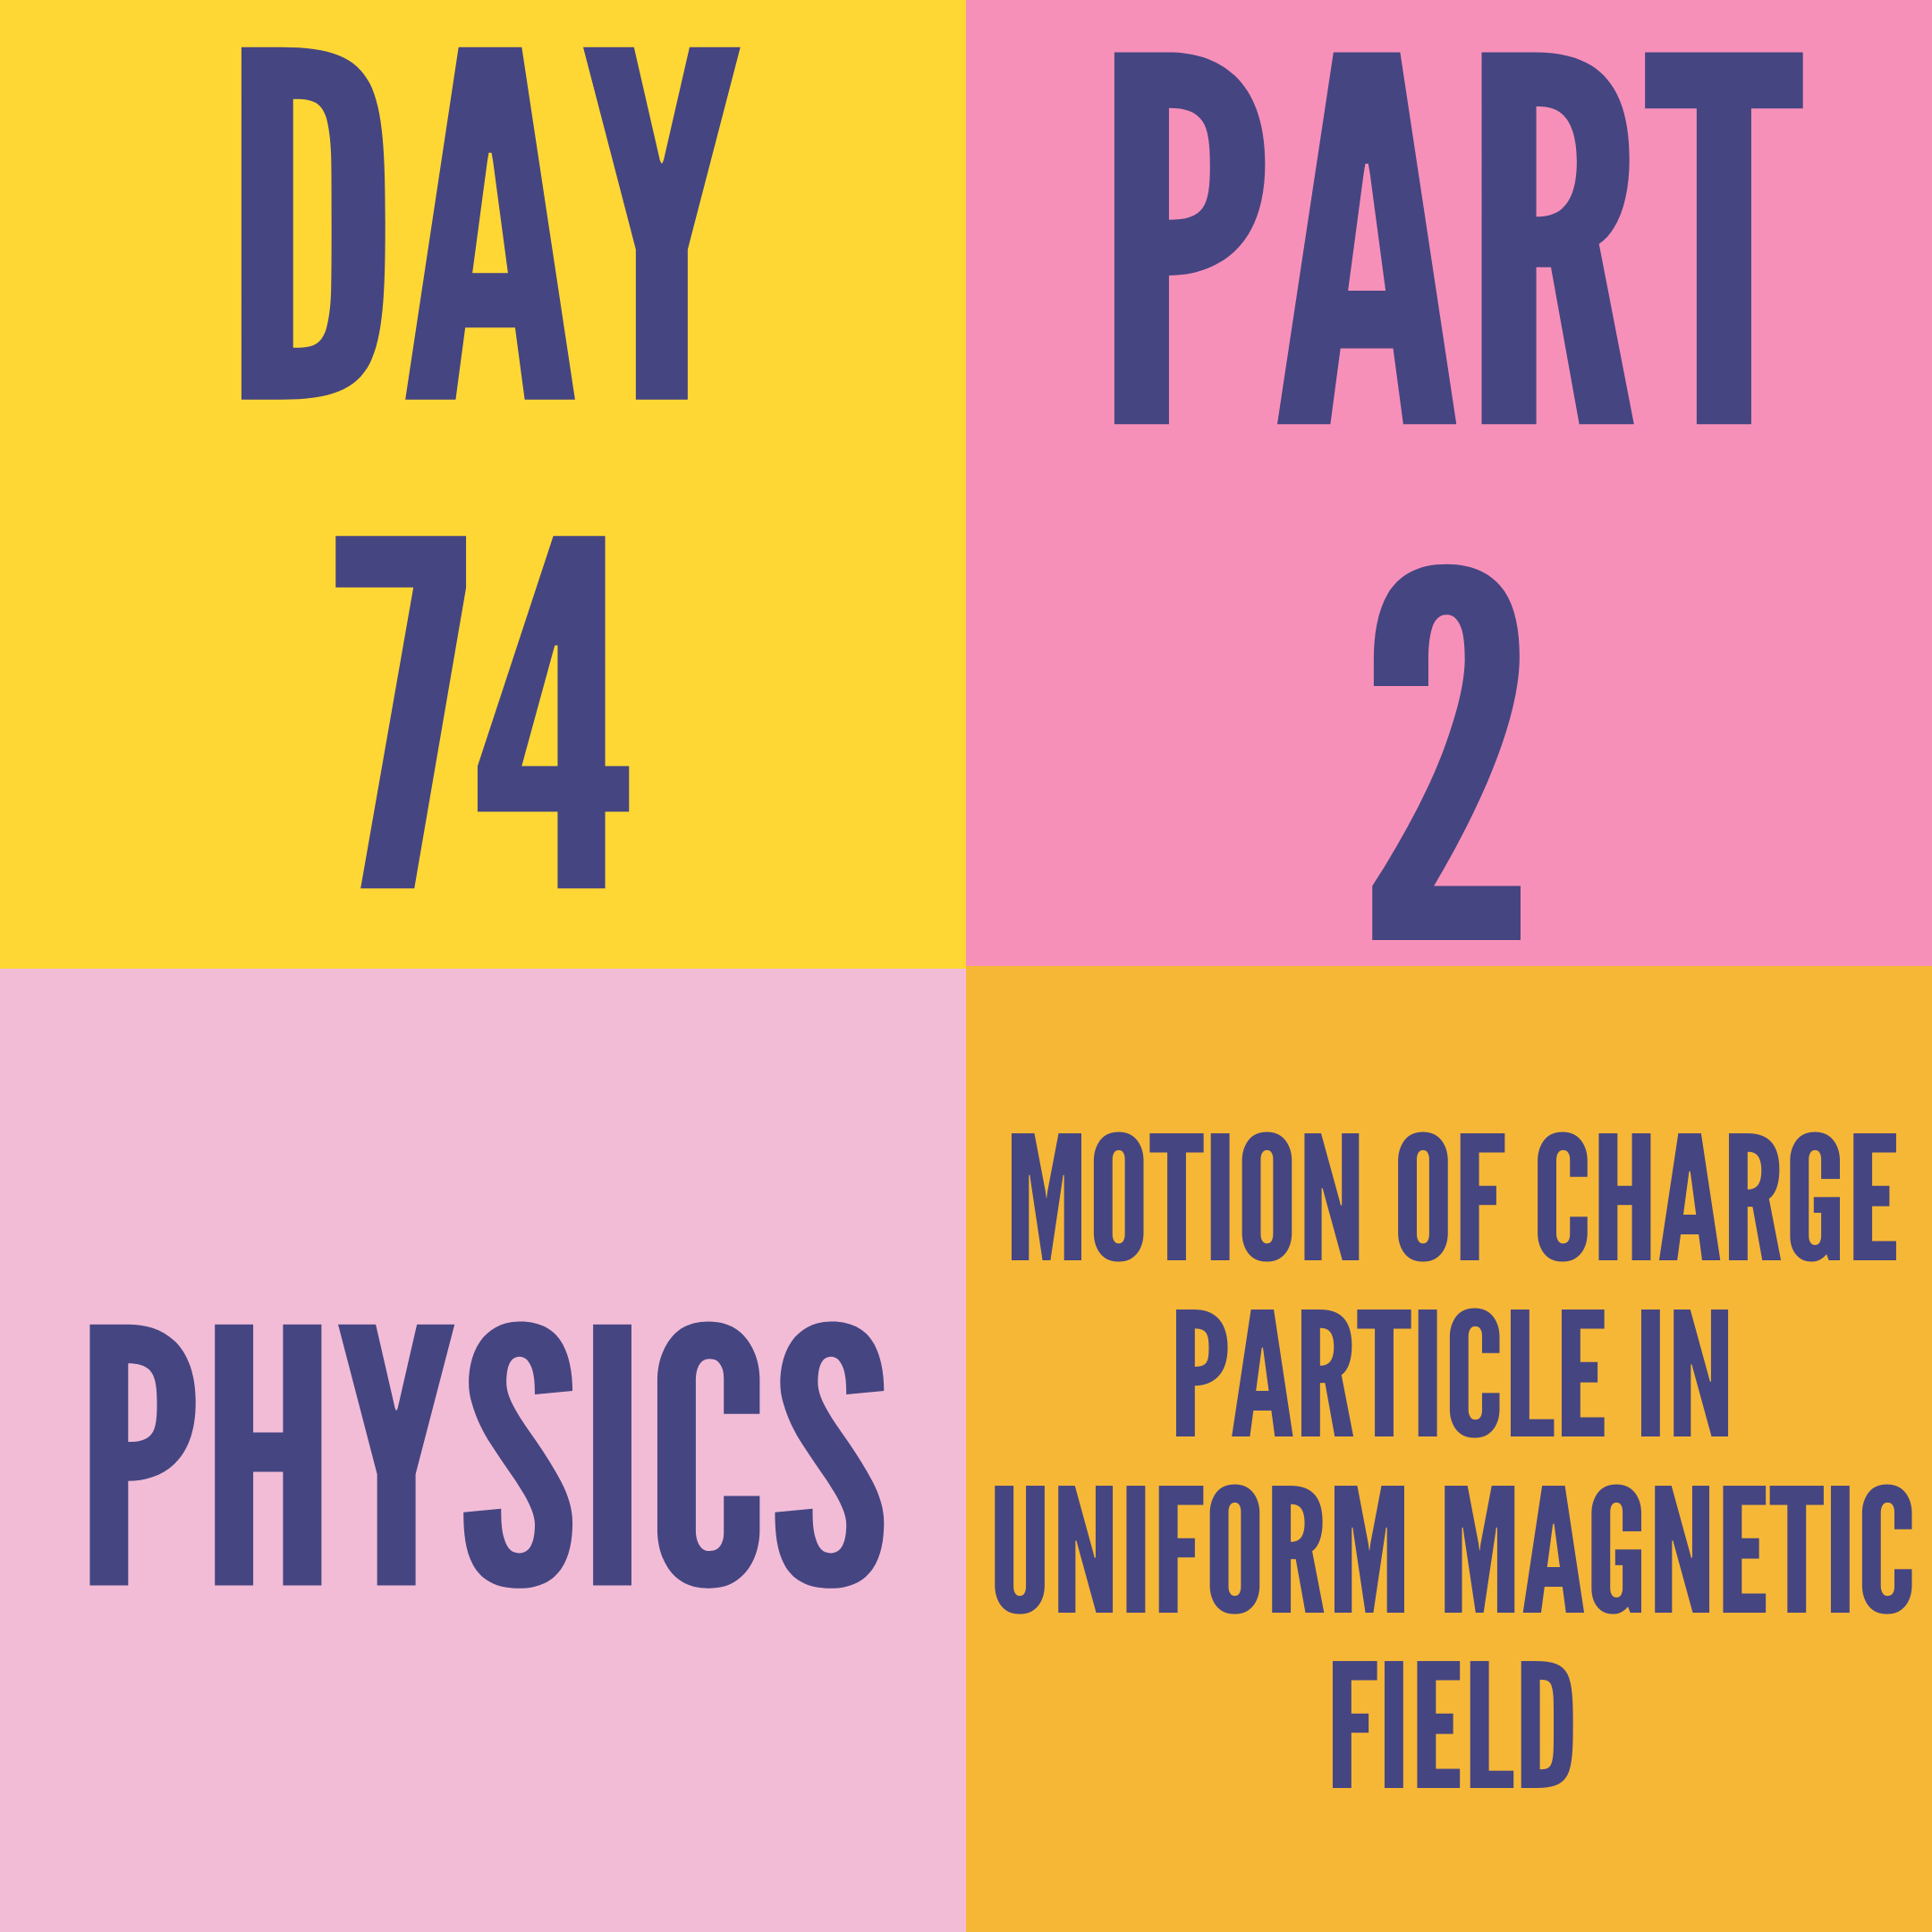 DAY-74 PART-2 MOTION OF CHARGE PARTICLE IN UNIFORM MAGNETIC FIELD